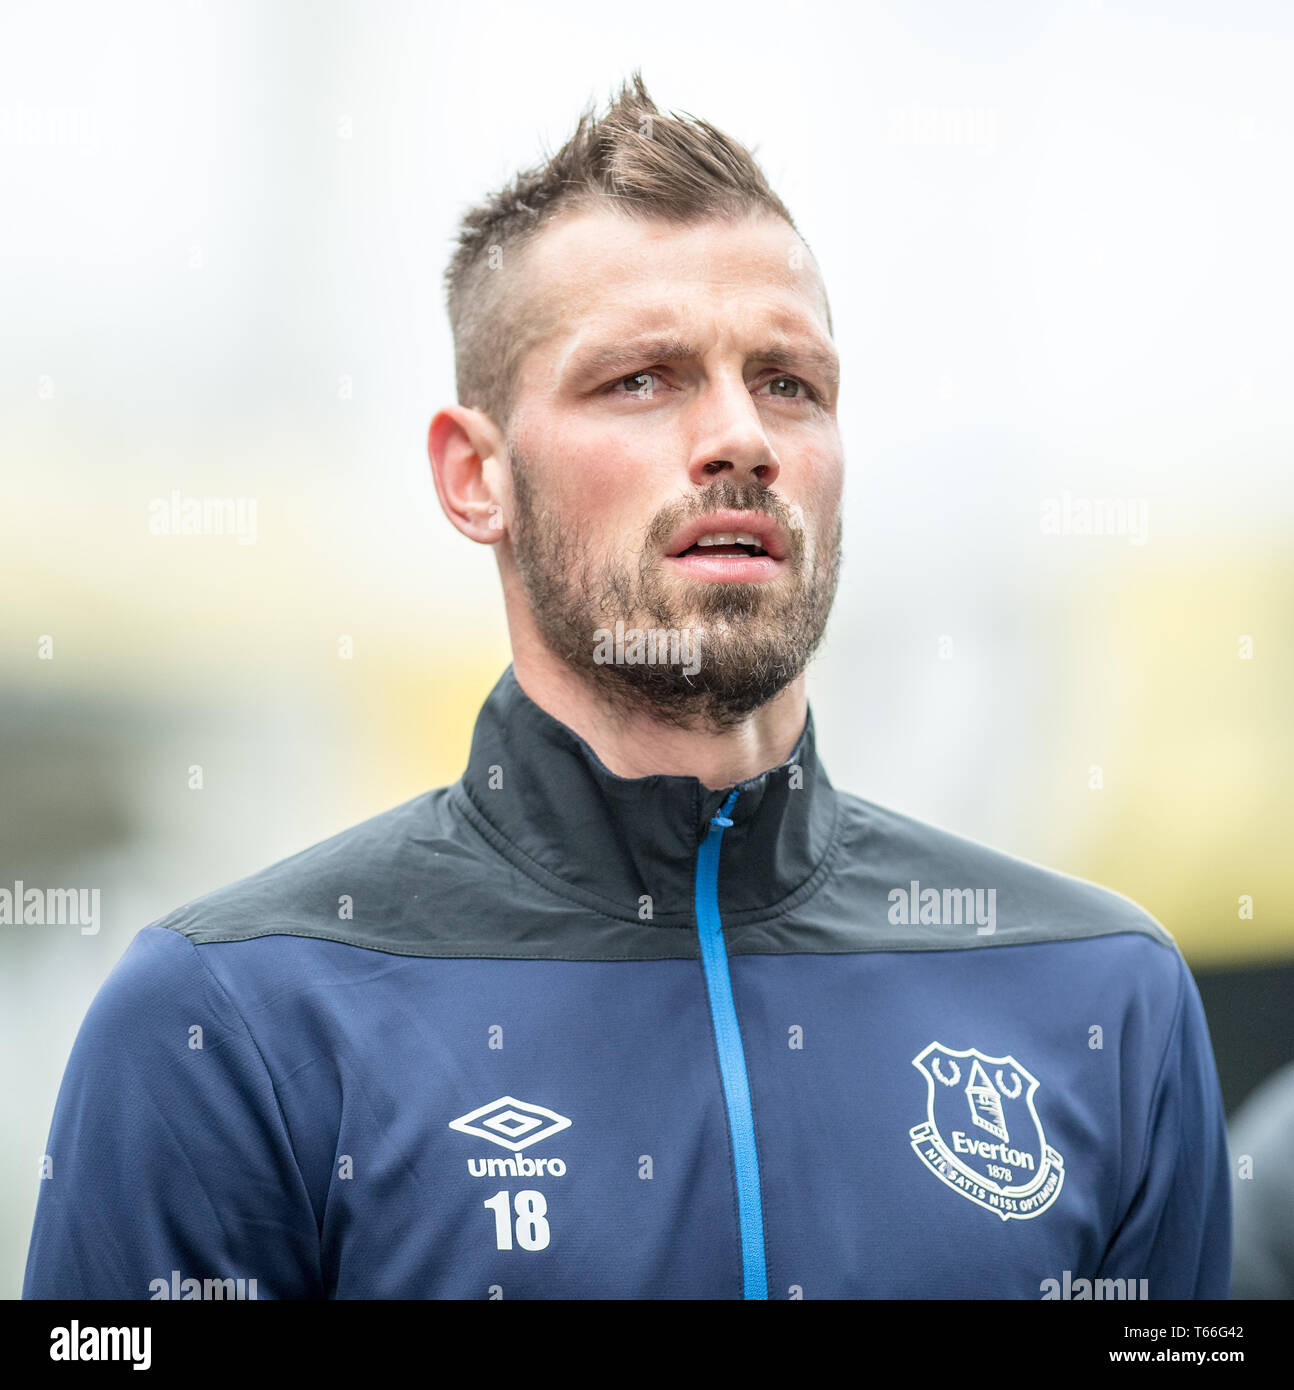 LONDON, ENGLAND - APRIL 27: Morgan Schneiderlin of Everton FC looks on during the Premier League match between Crystal Palace and Everton FC at Selhurst Park on April 27, 2019 in London, United Kingdom. (Photo by Sebastian Frej/MB Media/Getty Images) - Stock Image